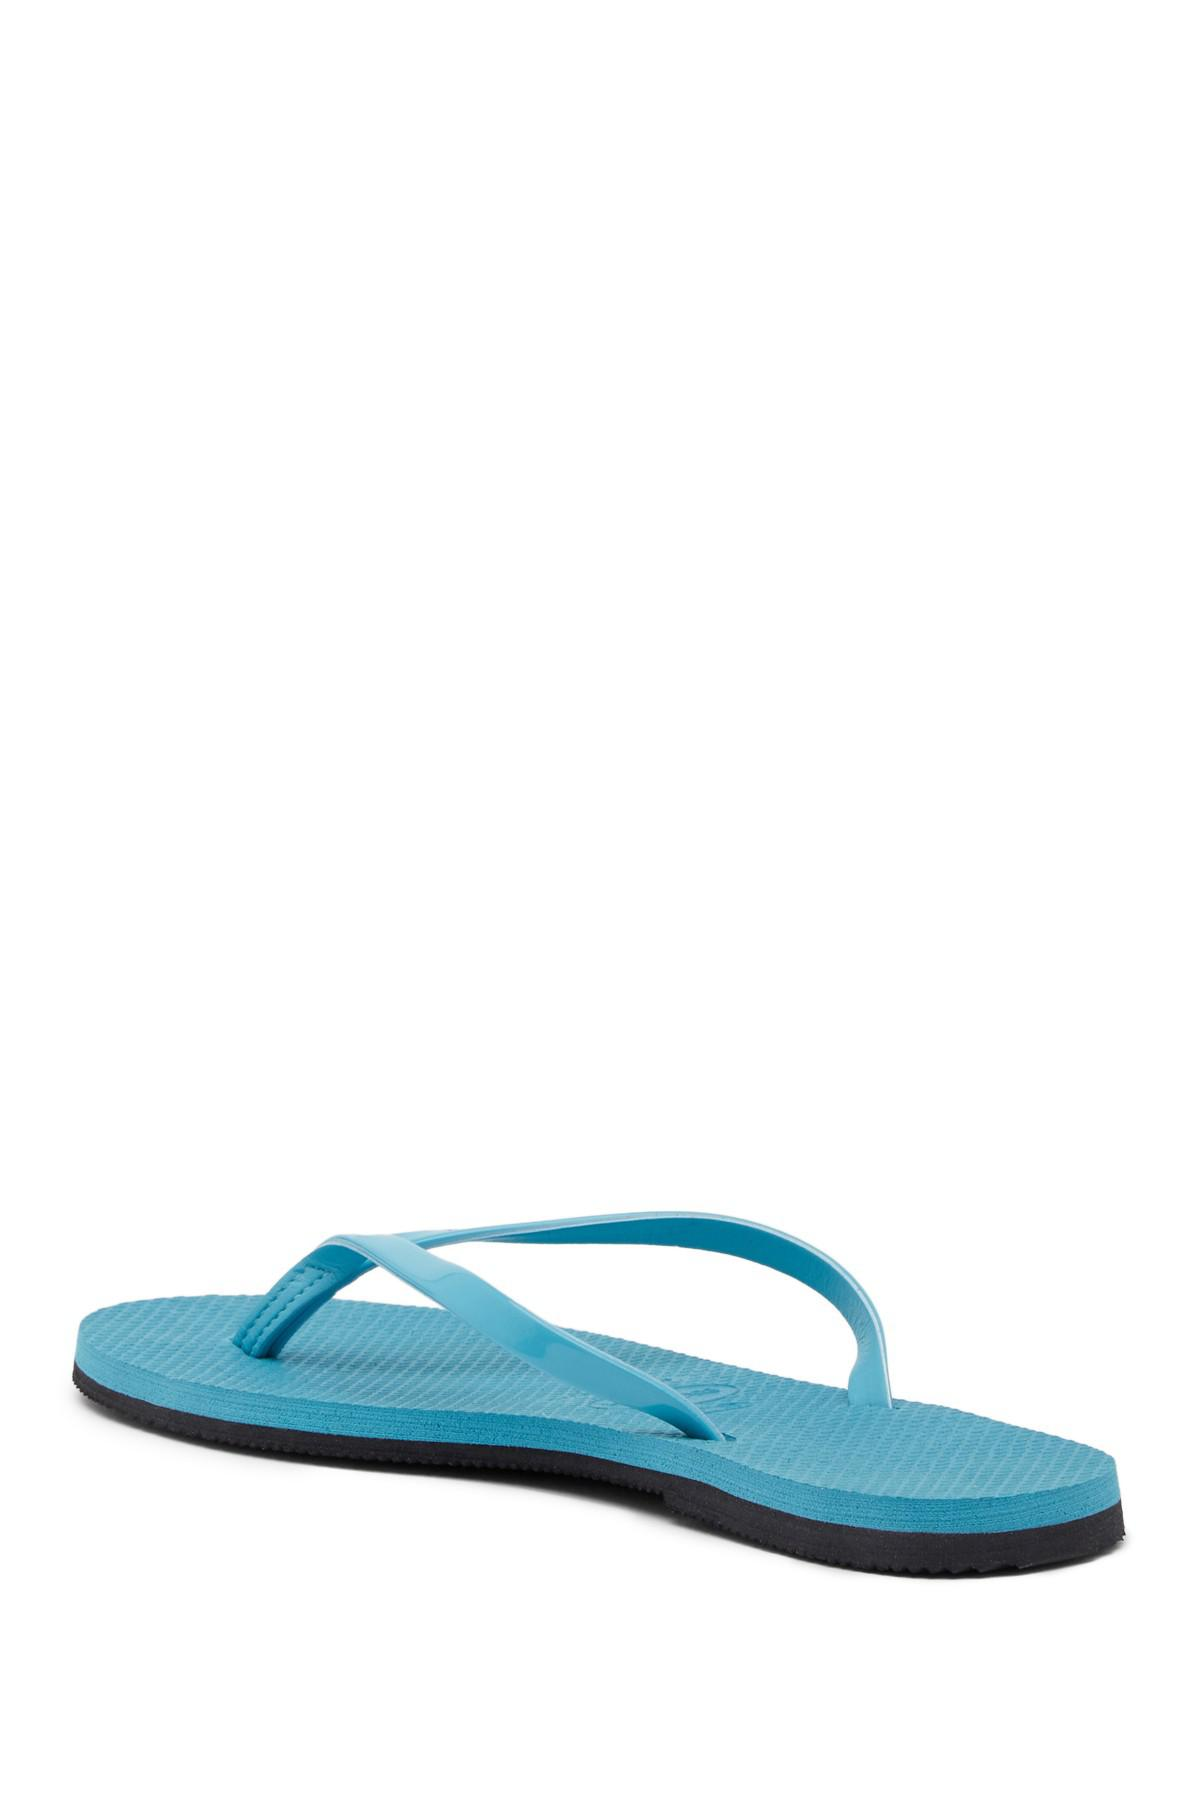 Havaianas Women's You Metallic Flip Flops Traditional Blue Sandal 8Gzyq2ah